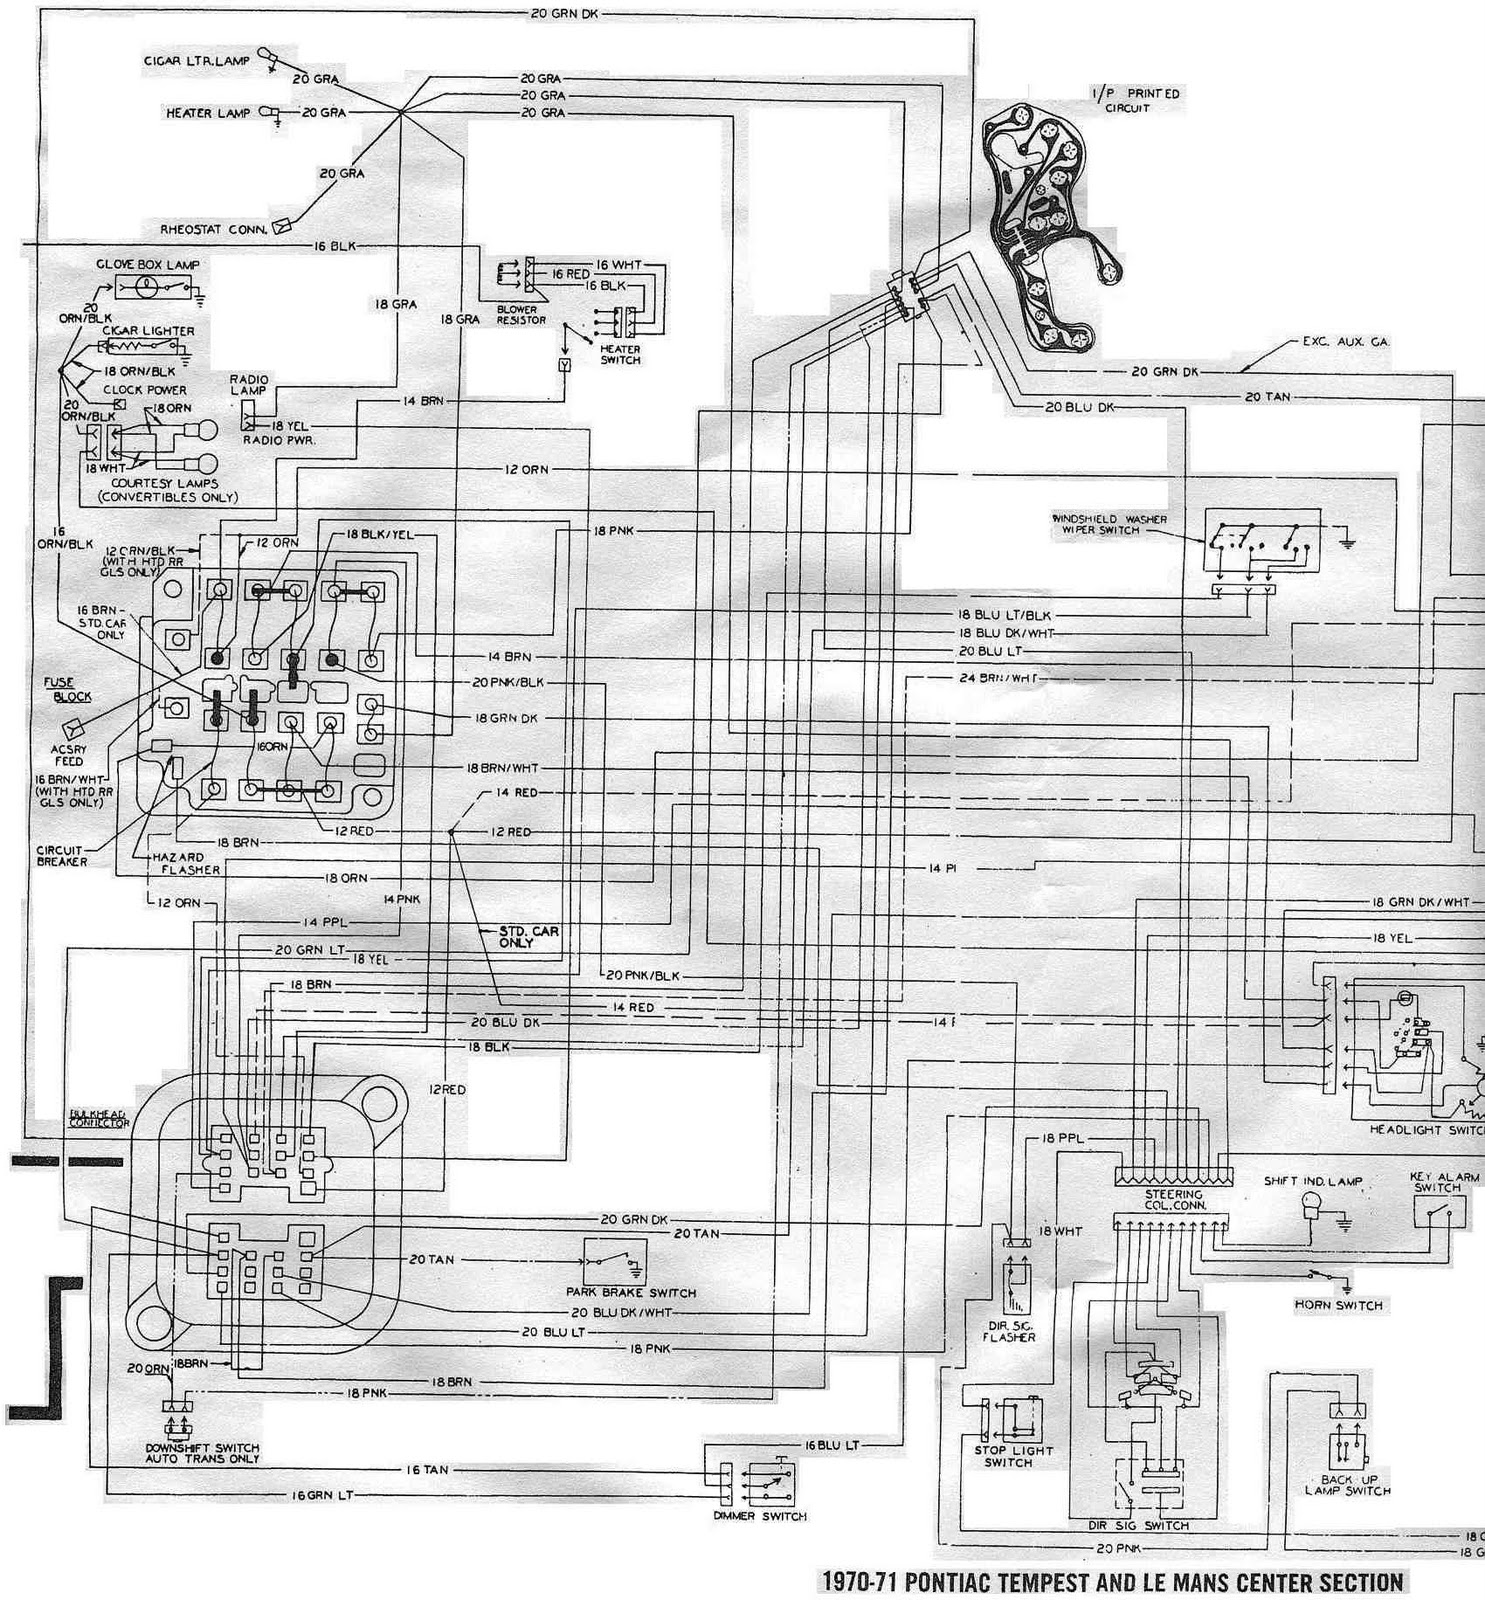 66 gto wiring diagram wiring diagram blogs 2004 pontiac gto wiring diagram 1966 pontiac gto engine wiring diagram [ 1485 x 1600 Pixel ]